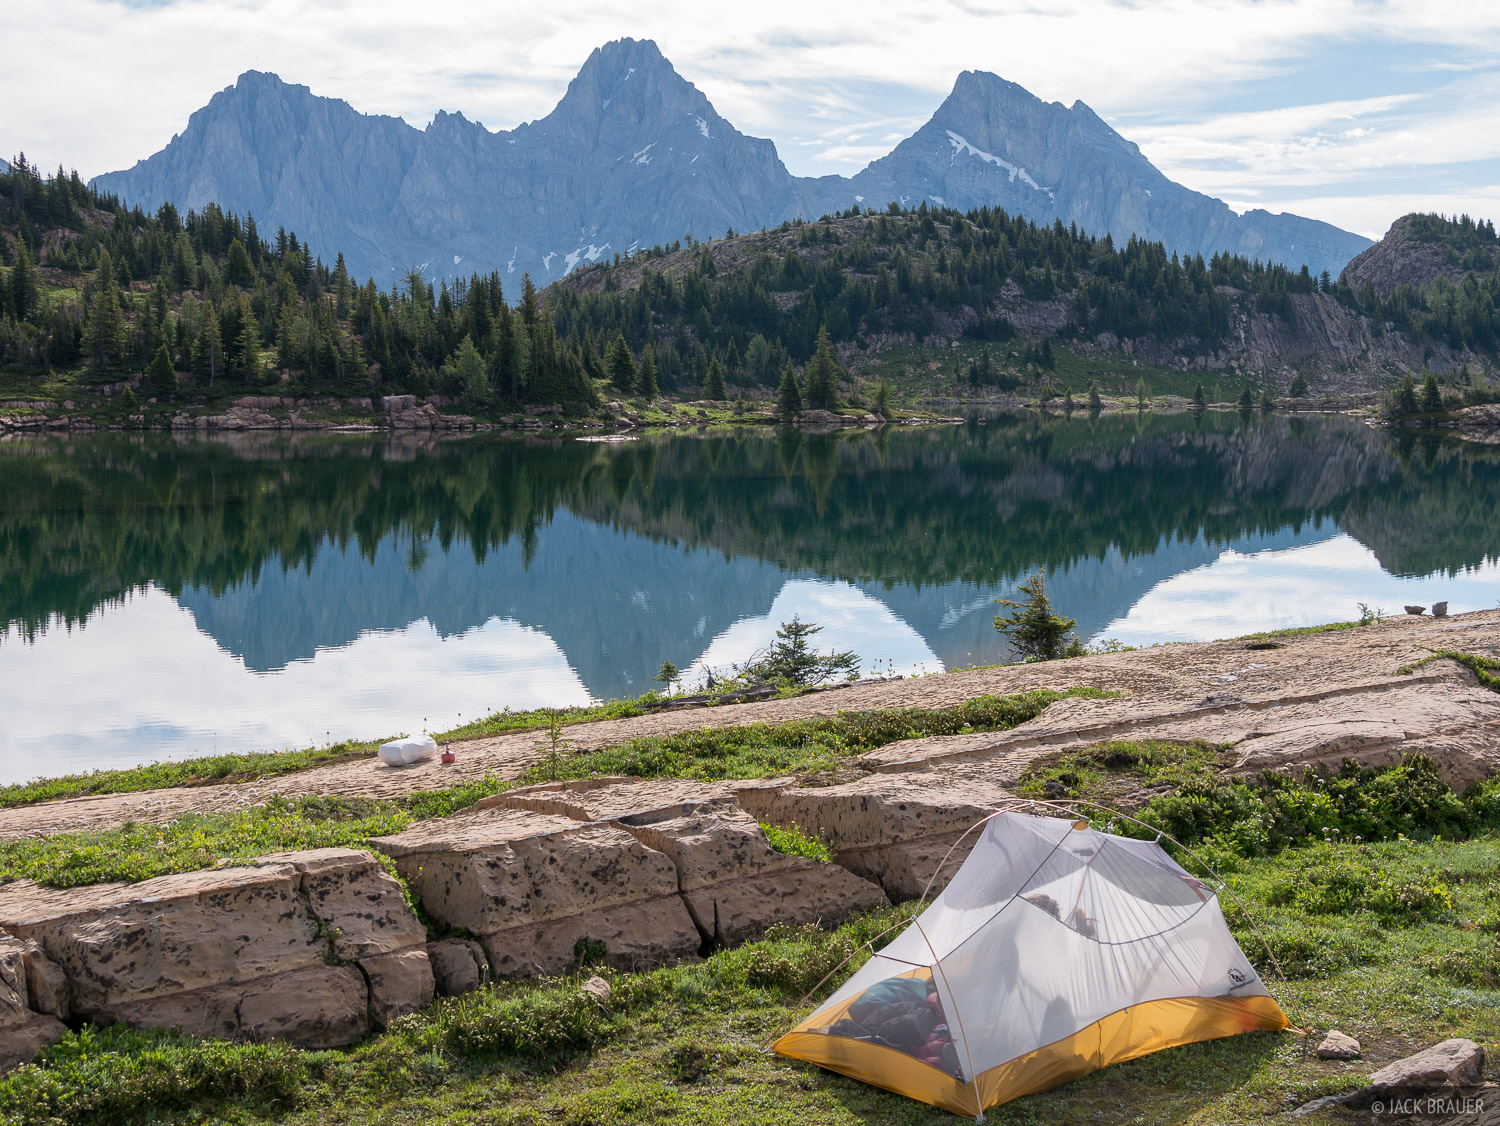 British Columbia, Canada, Canadian Rockies, Height of the Rockies, Limestone Lakes, Mount Cadorna, Mount Swiderski, tent, photo